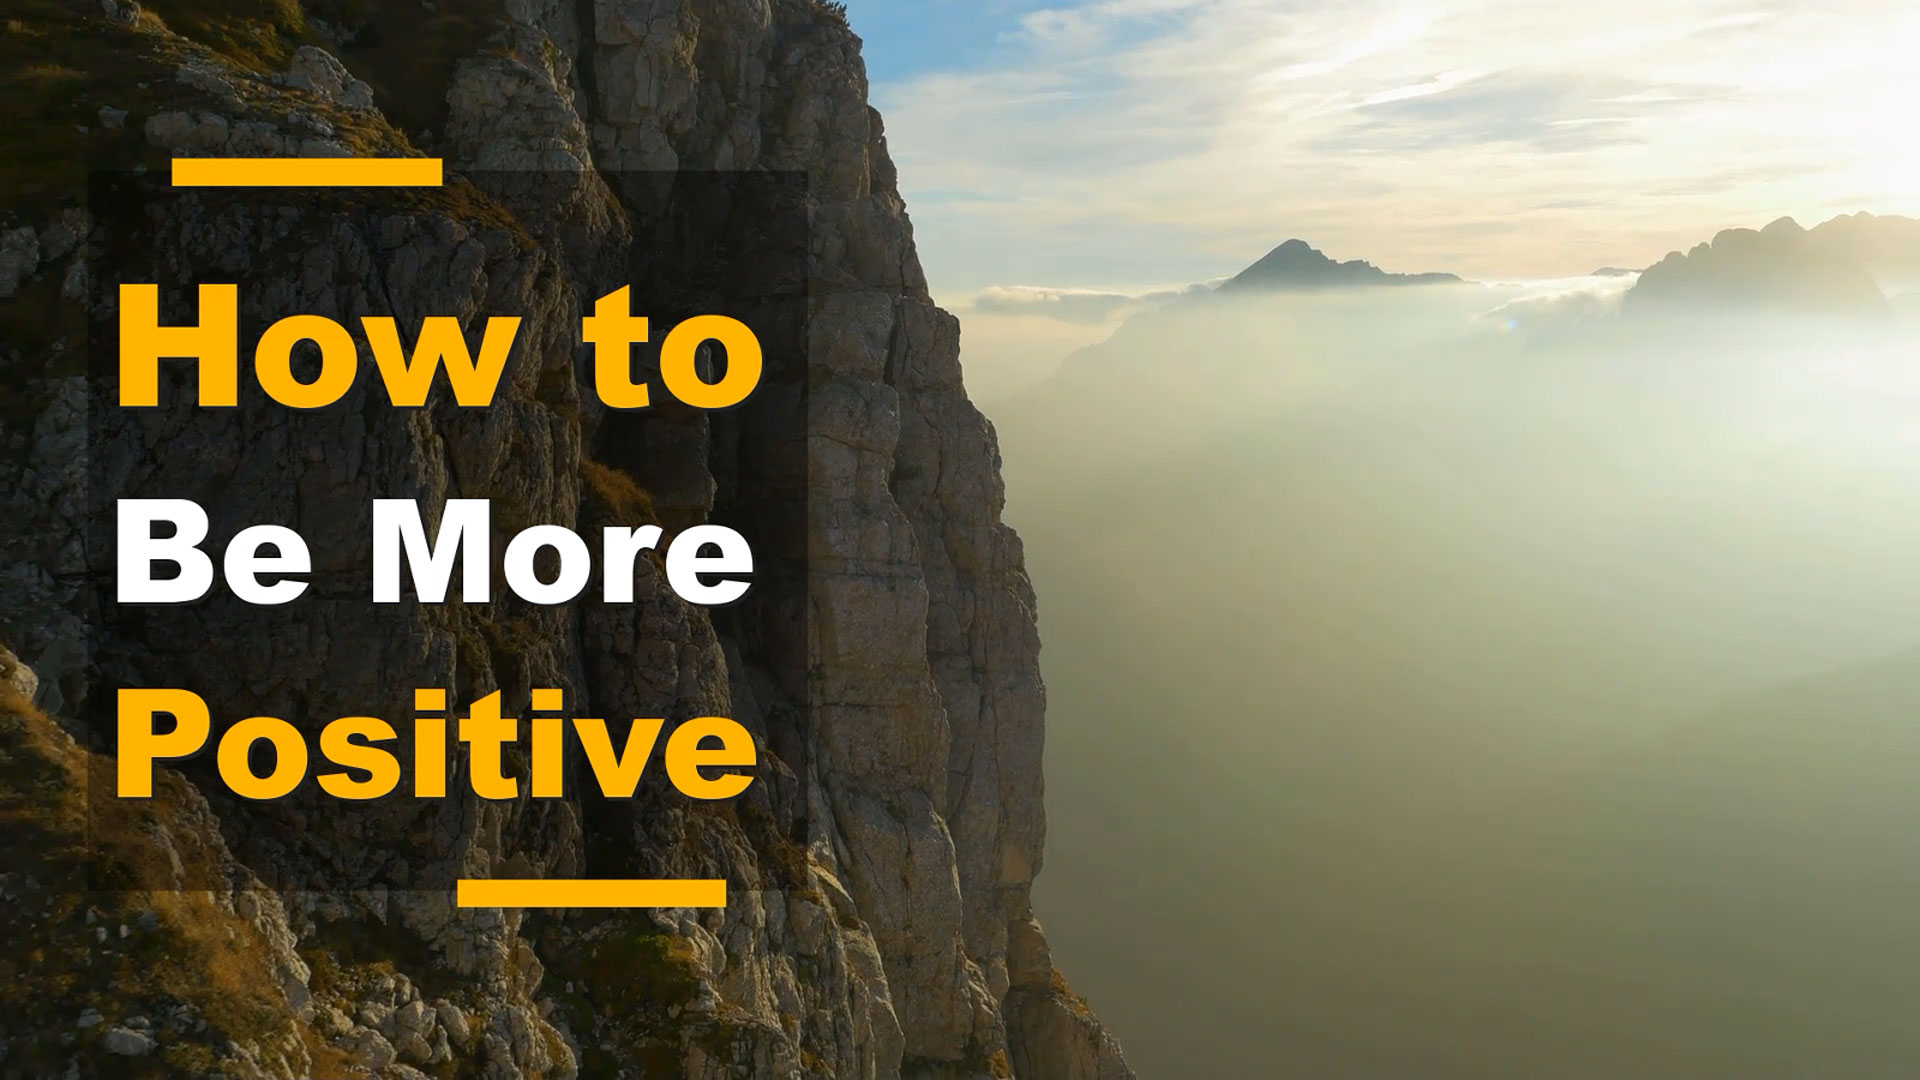 How to Be More Positive